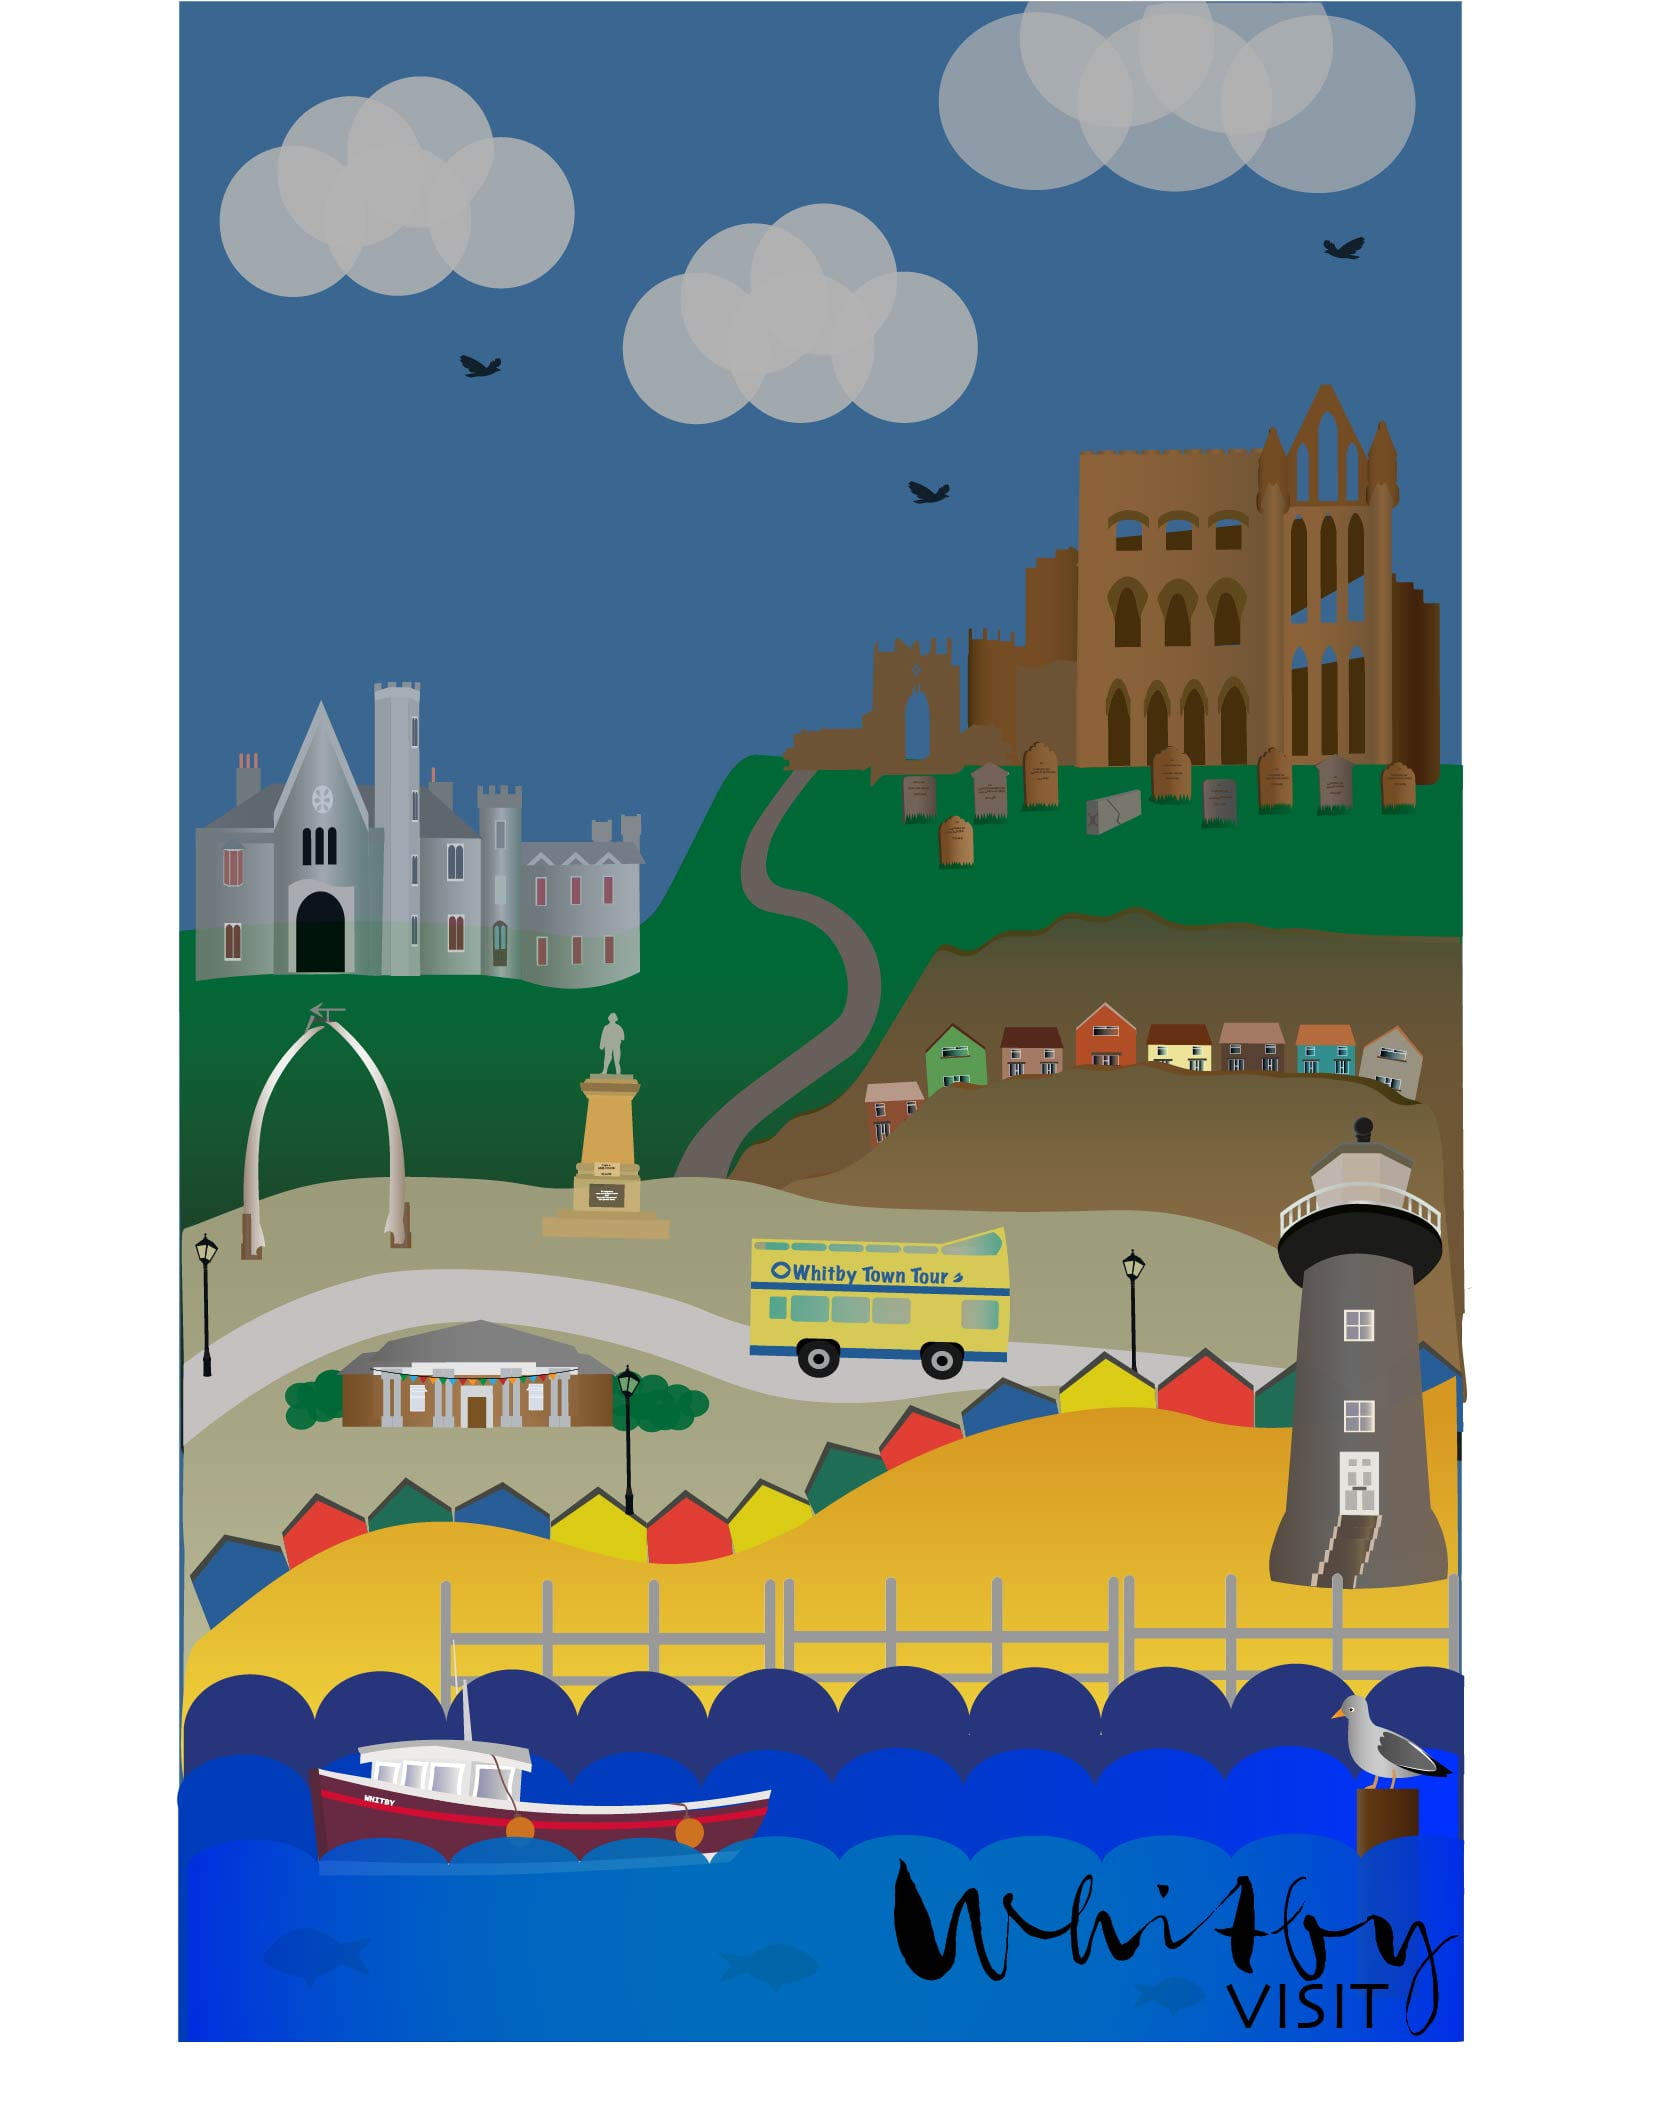 Illustration. A poster composed of minimalist drawings of Whitby landmarks, text at the bottom reads: